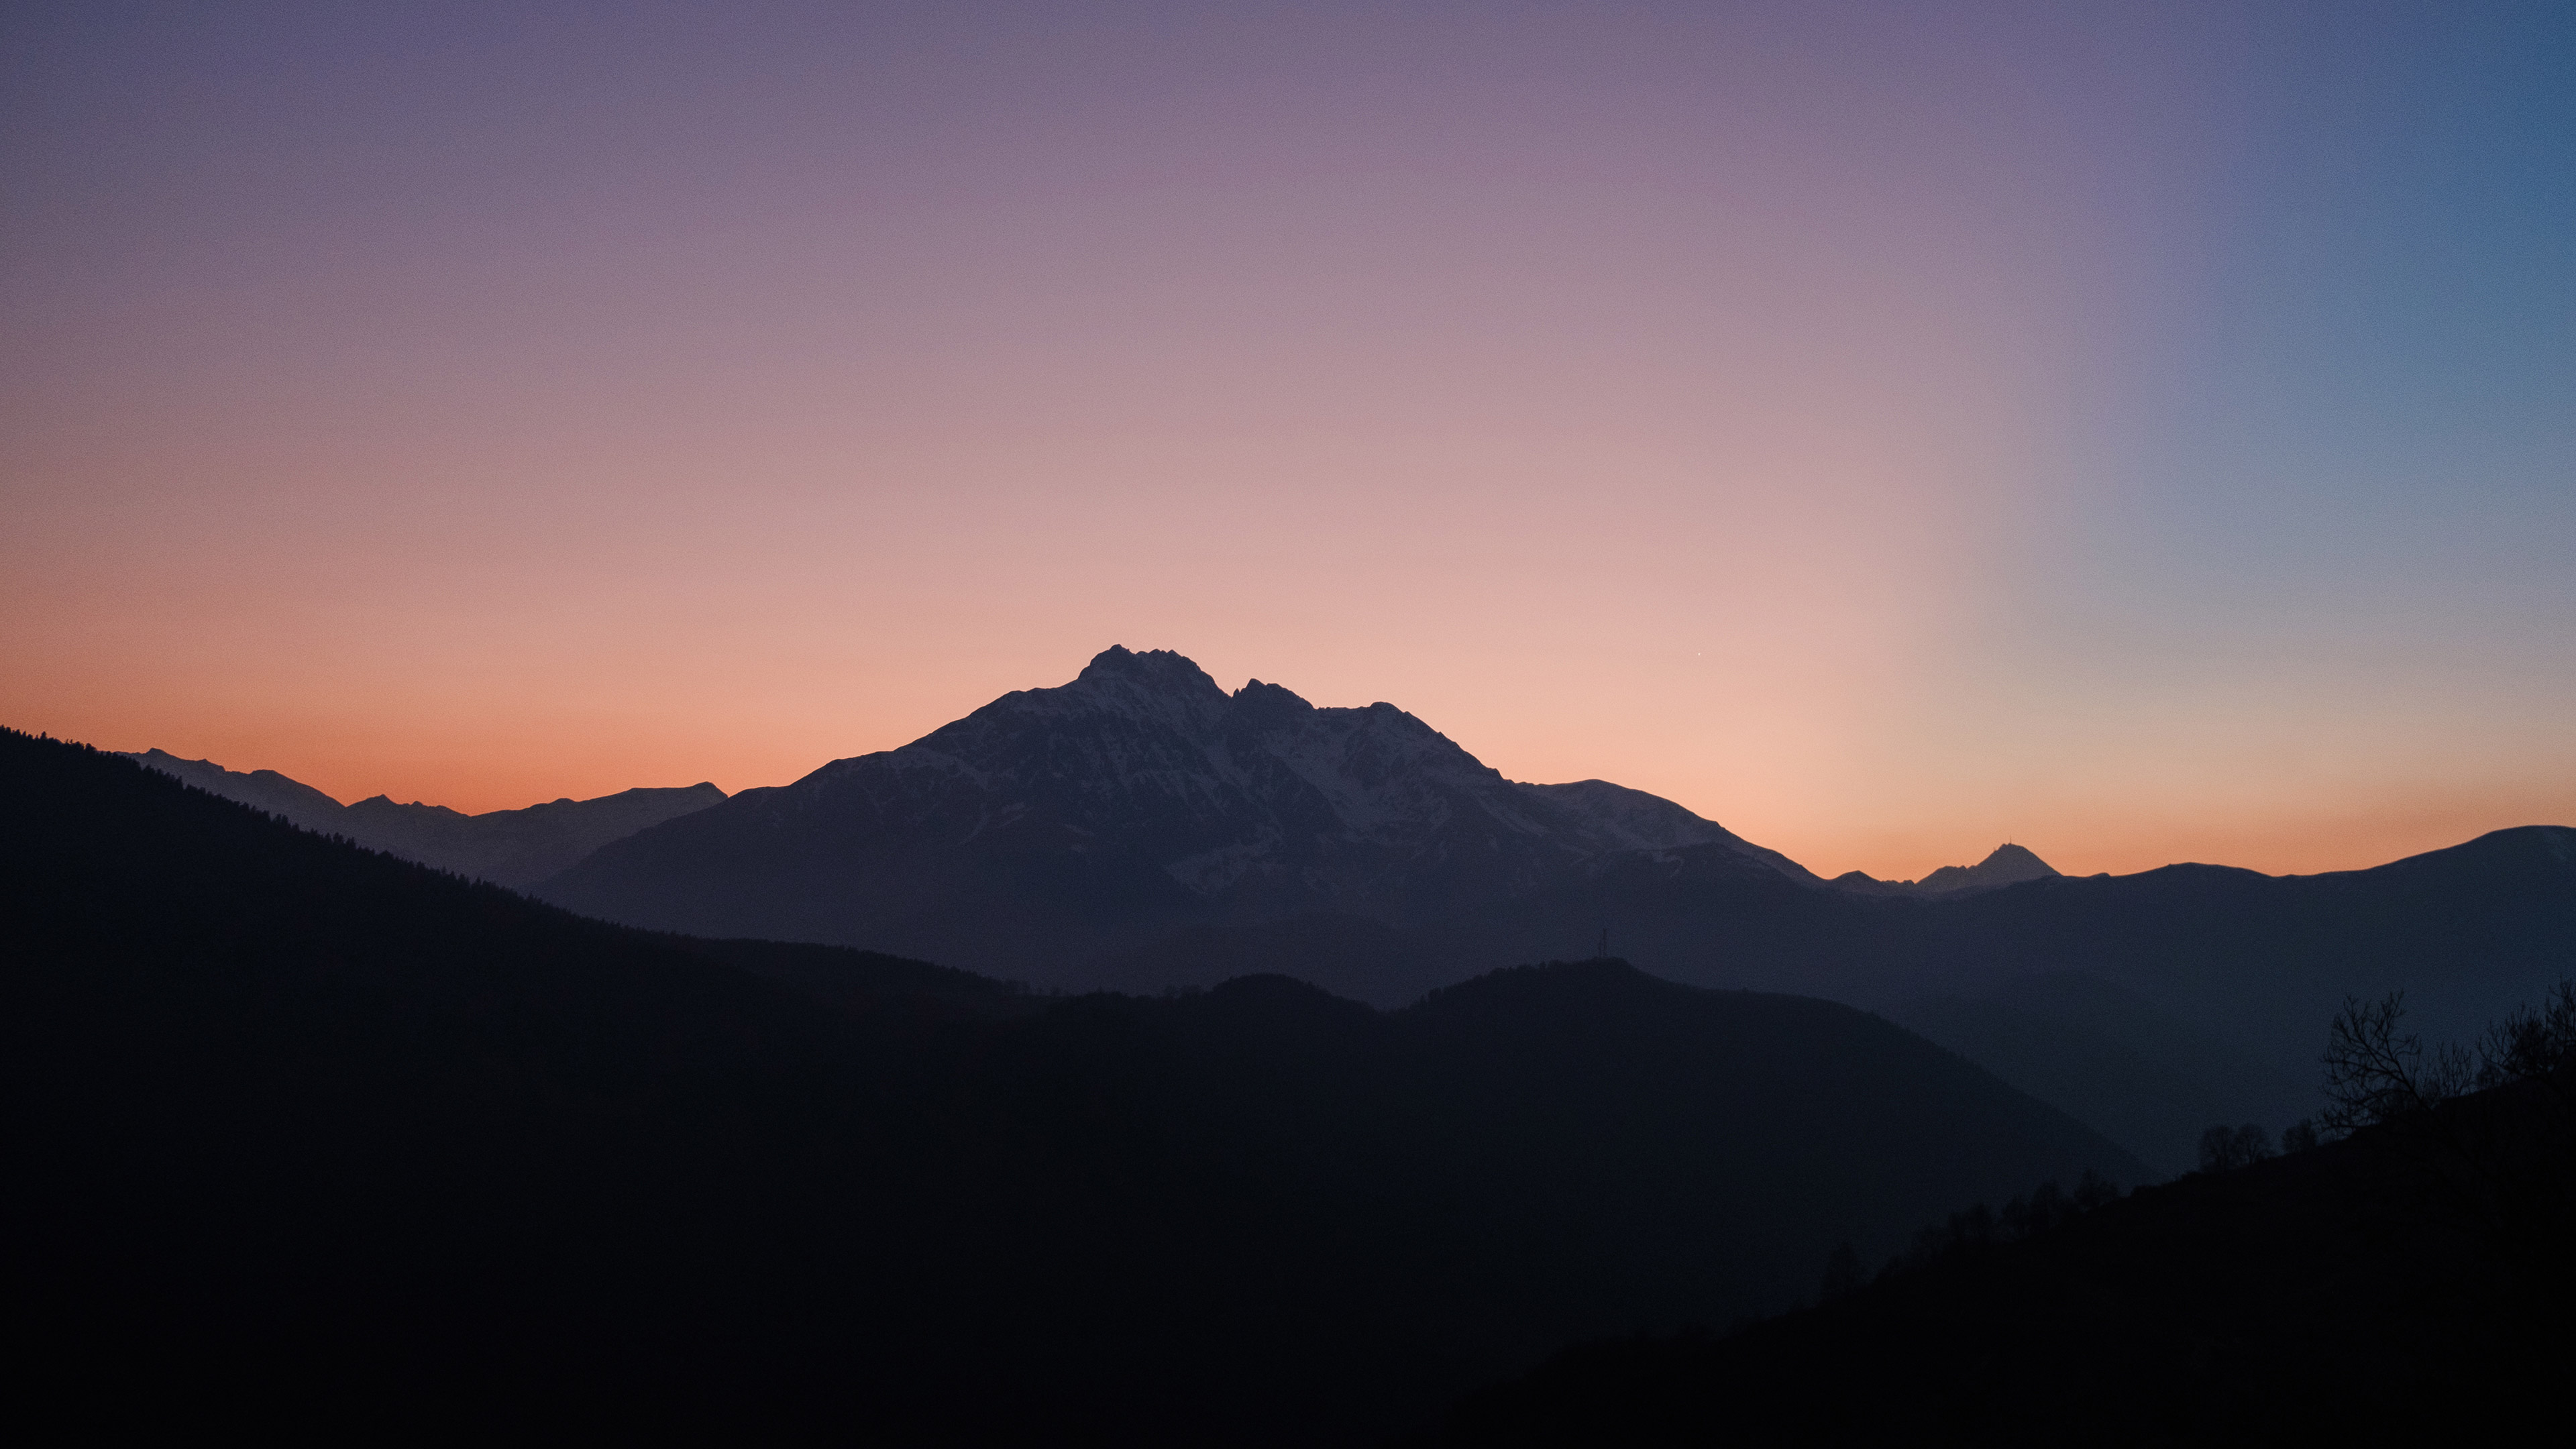 Nice Sunset Over Mountains 4k, HD Nature, 4k Wallpapers ...